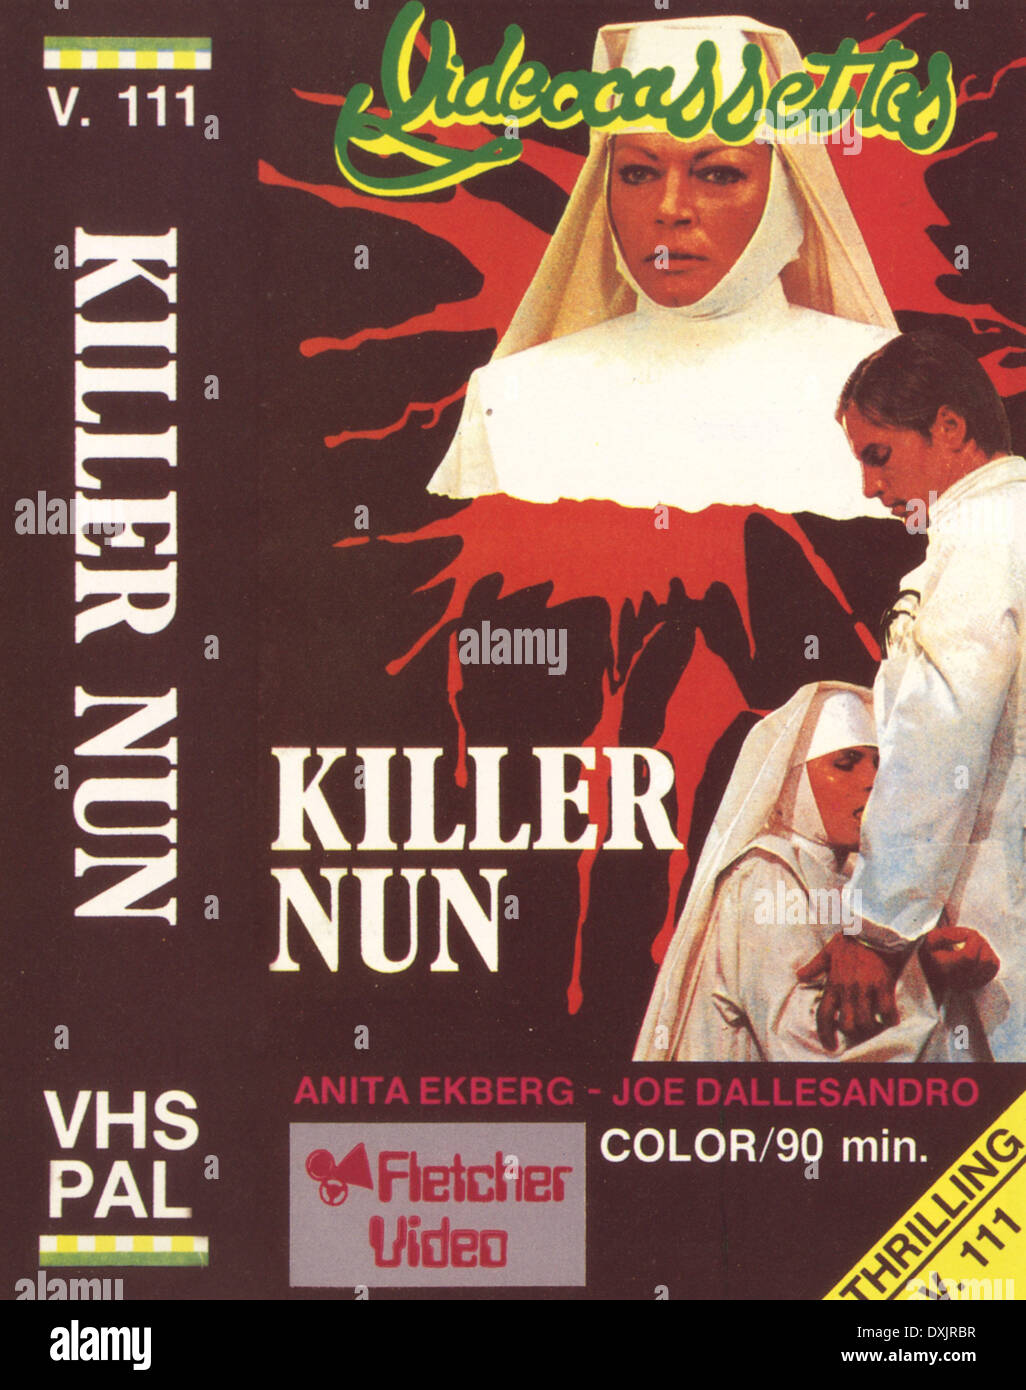 KILLER NUN (1978) PICTURE FROM THE RONALD GRANT ARCHIVE - Stock Image